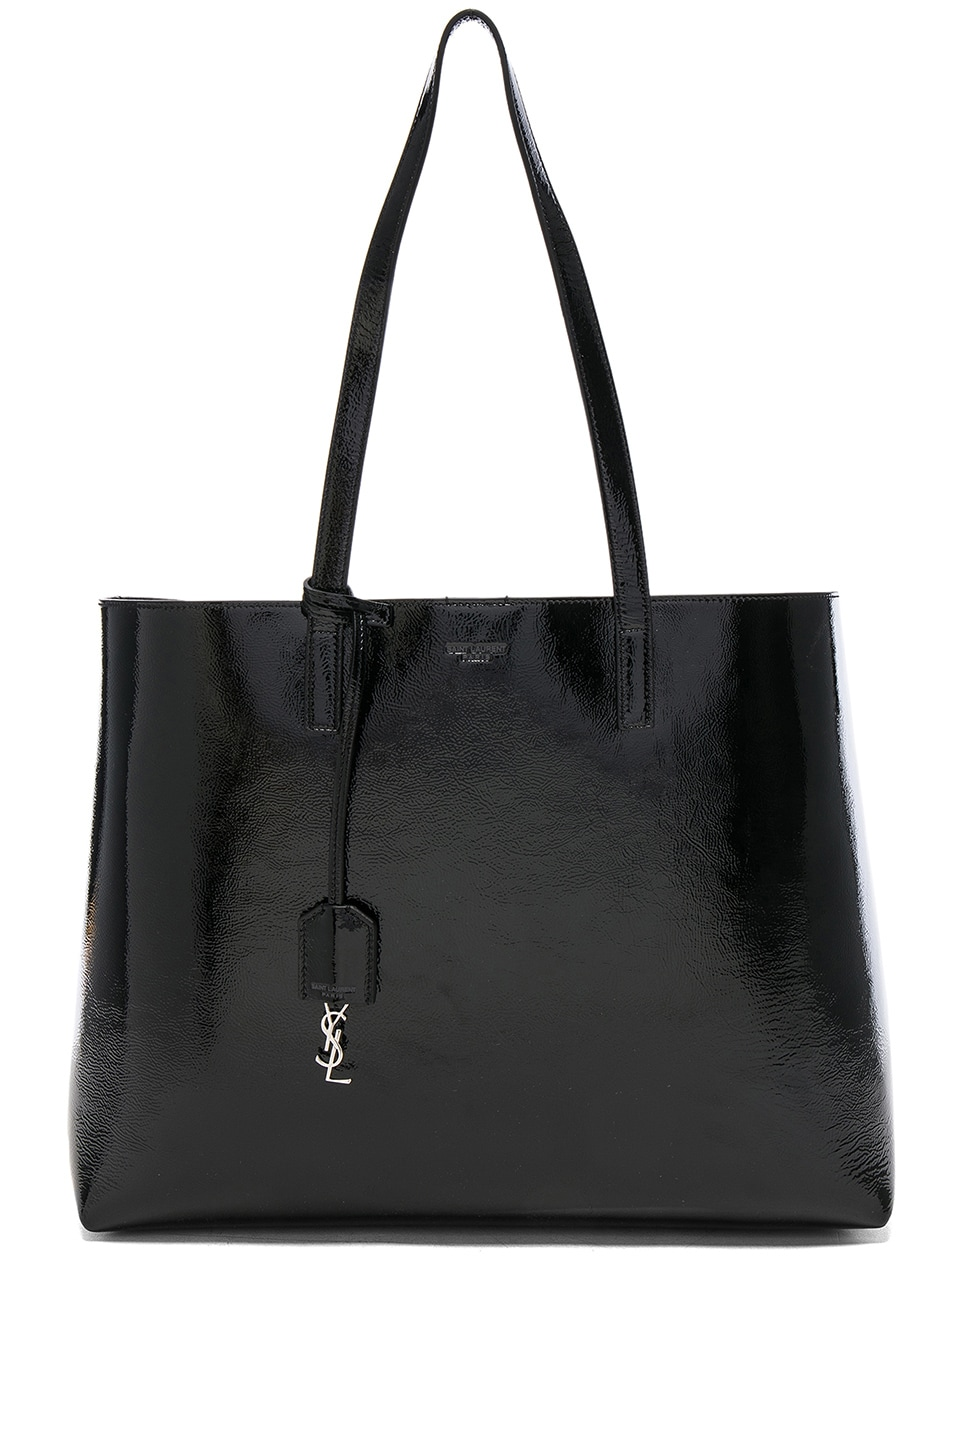 Image 1 of Saint Laurent Patent Leather Shopping Bag in Black